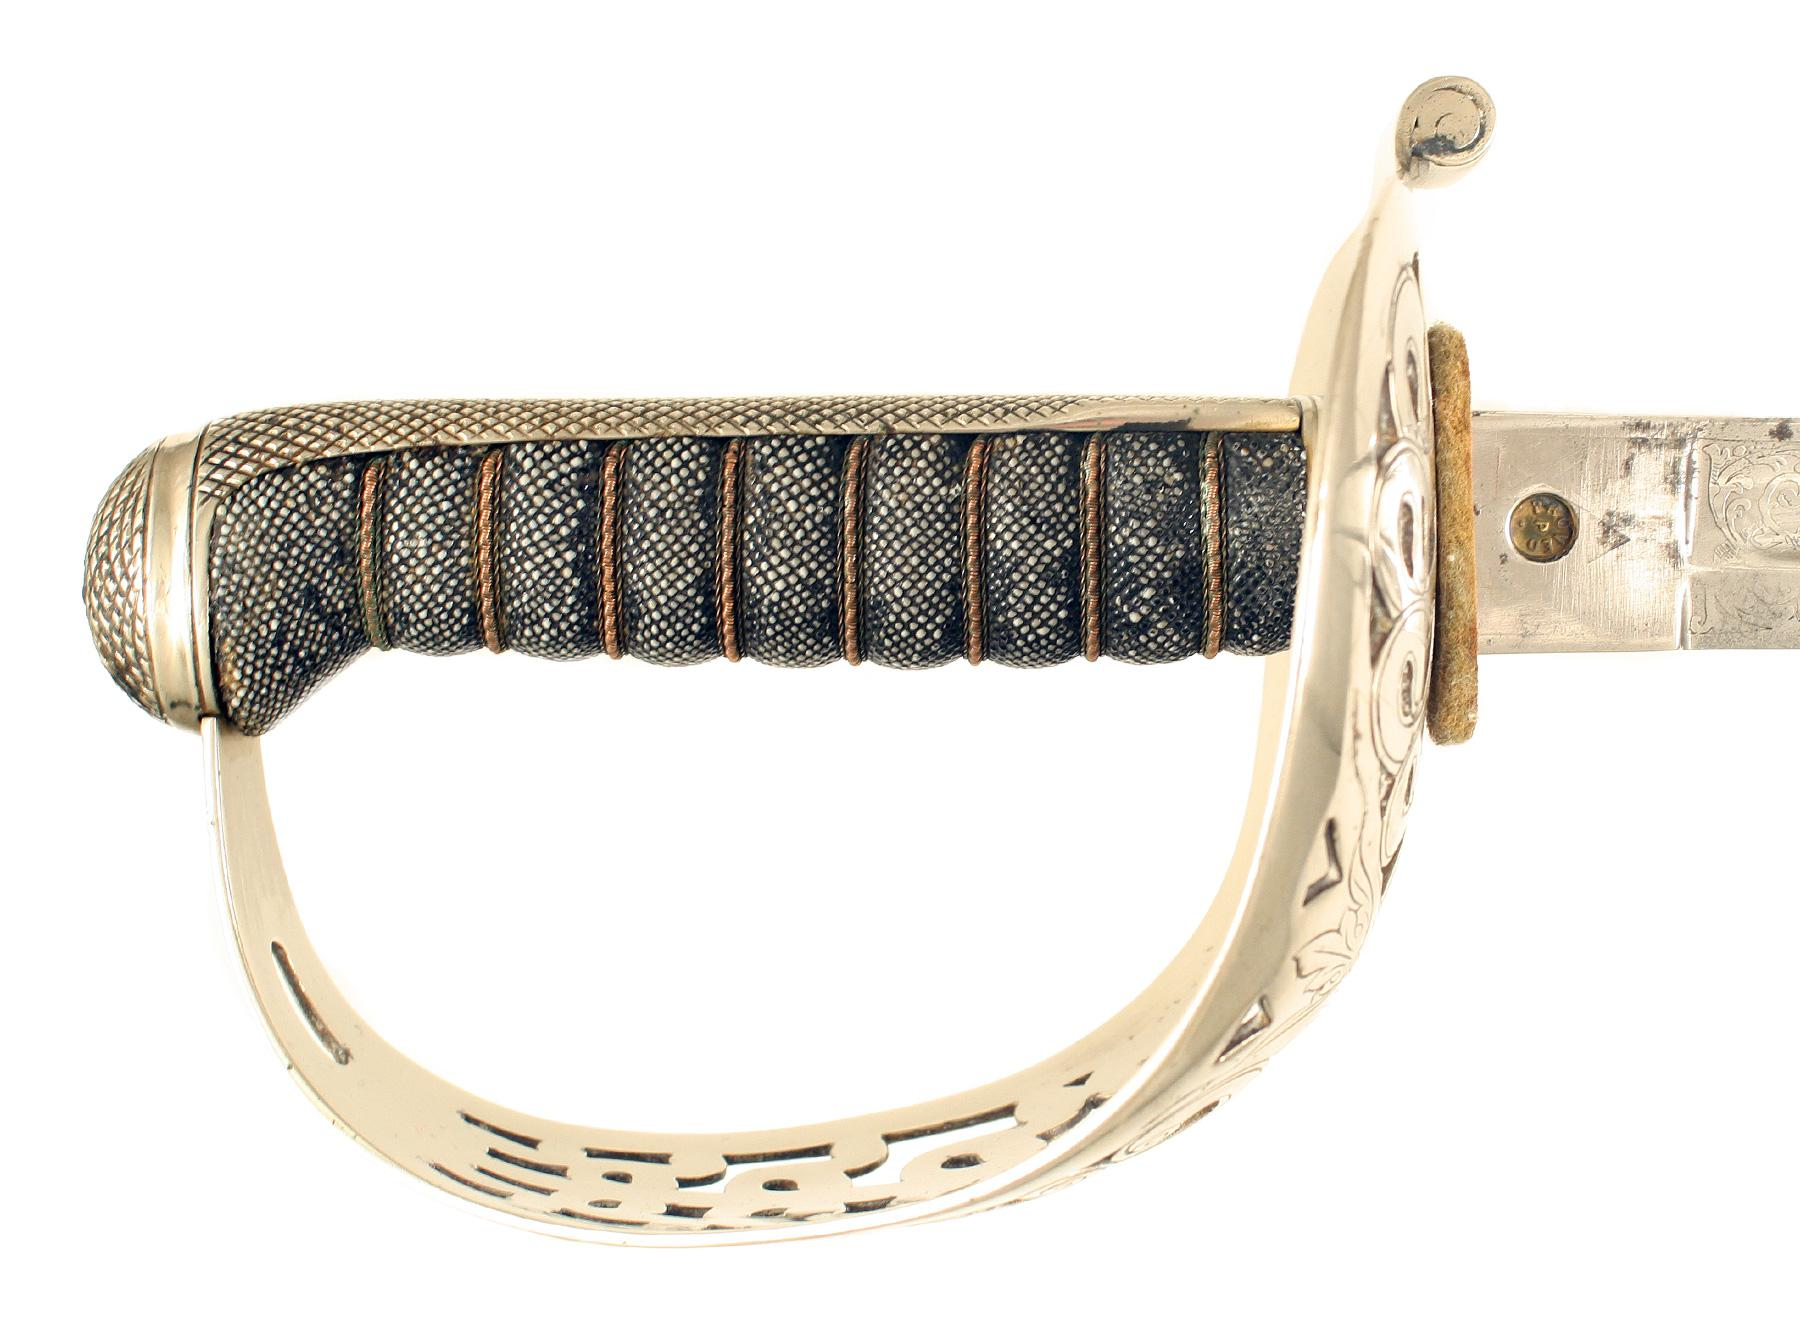 An 1887 Pattern Cavalry Sword